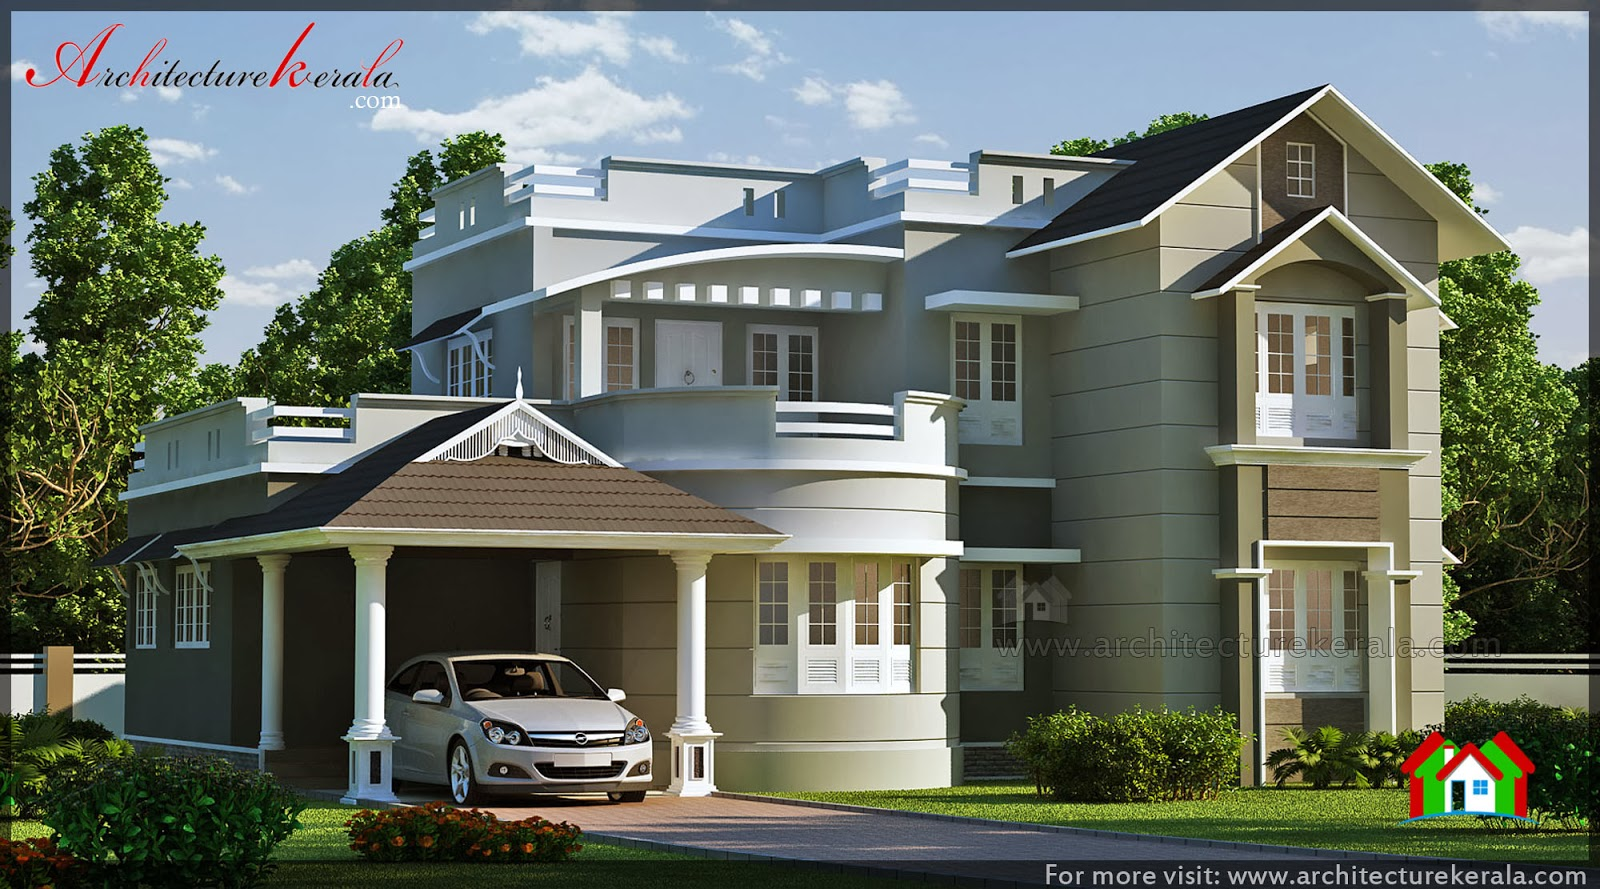 Good looking house design architecture kerala for Good house plans